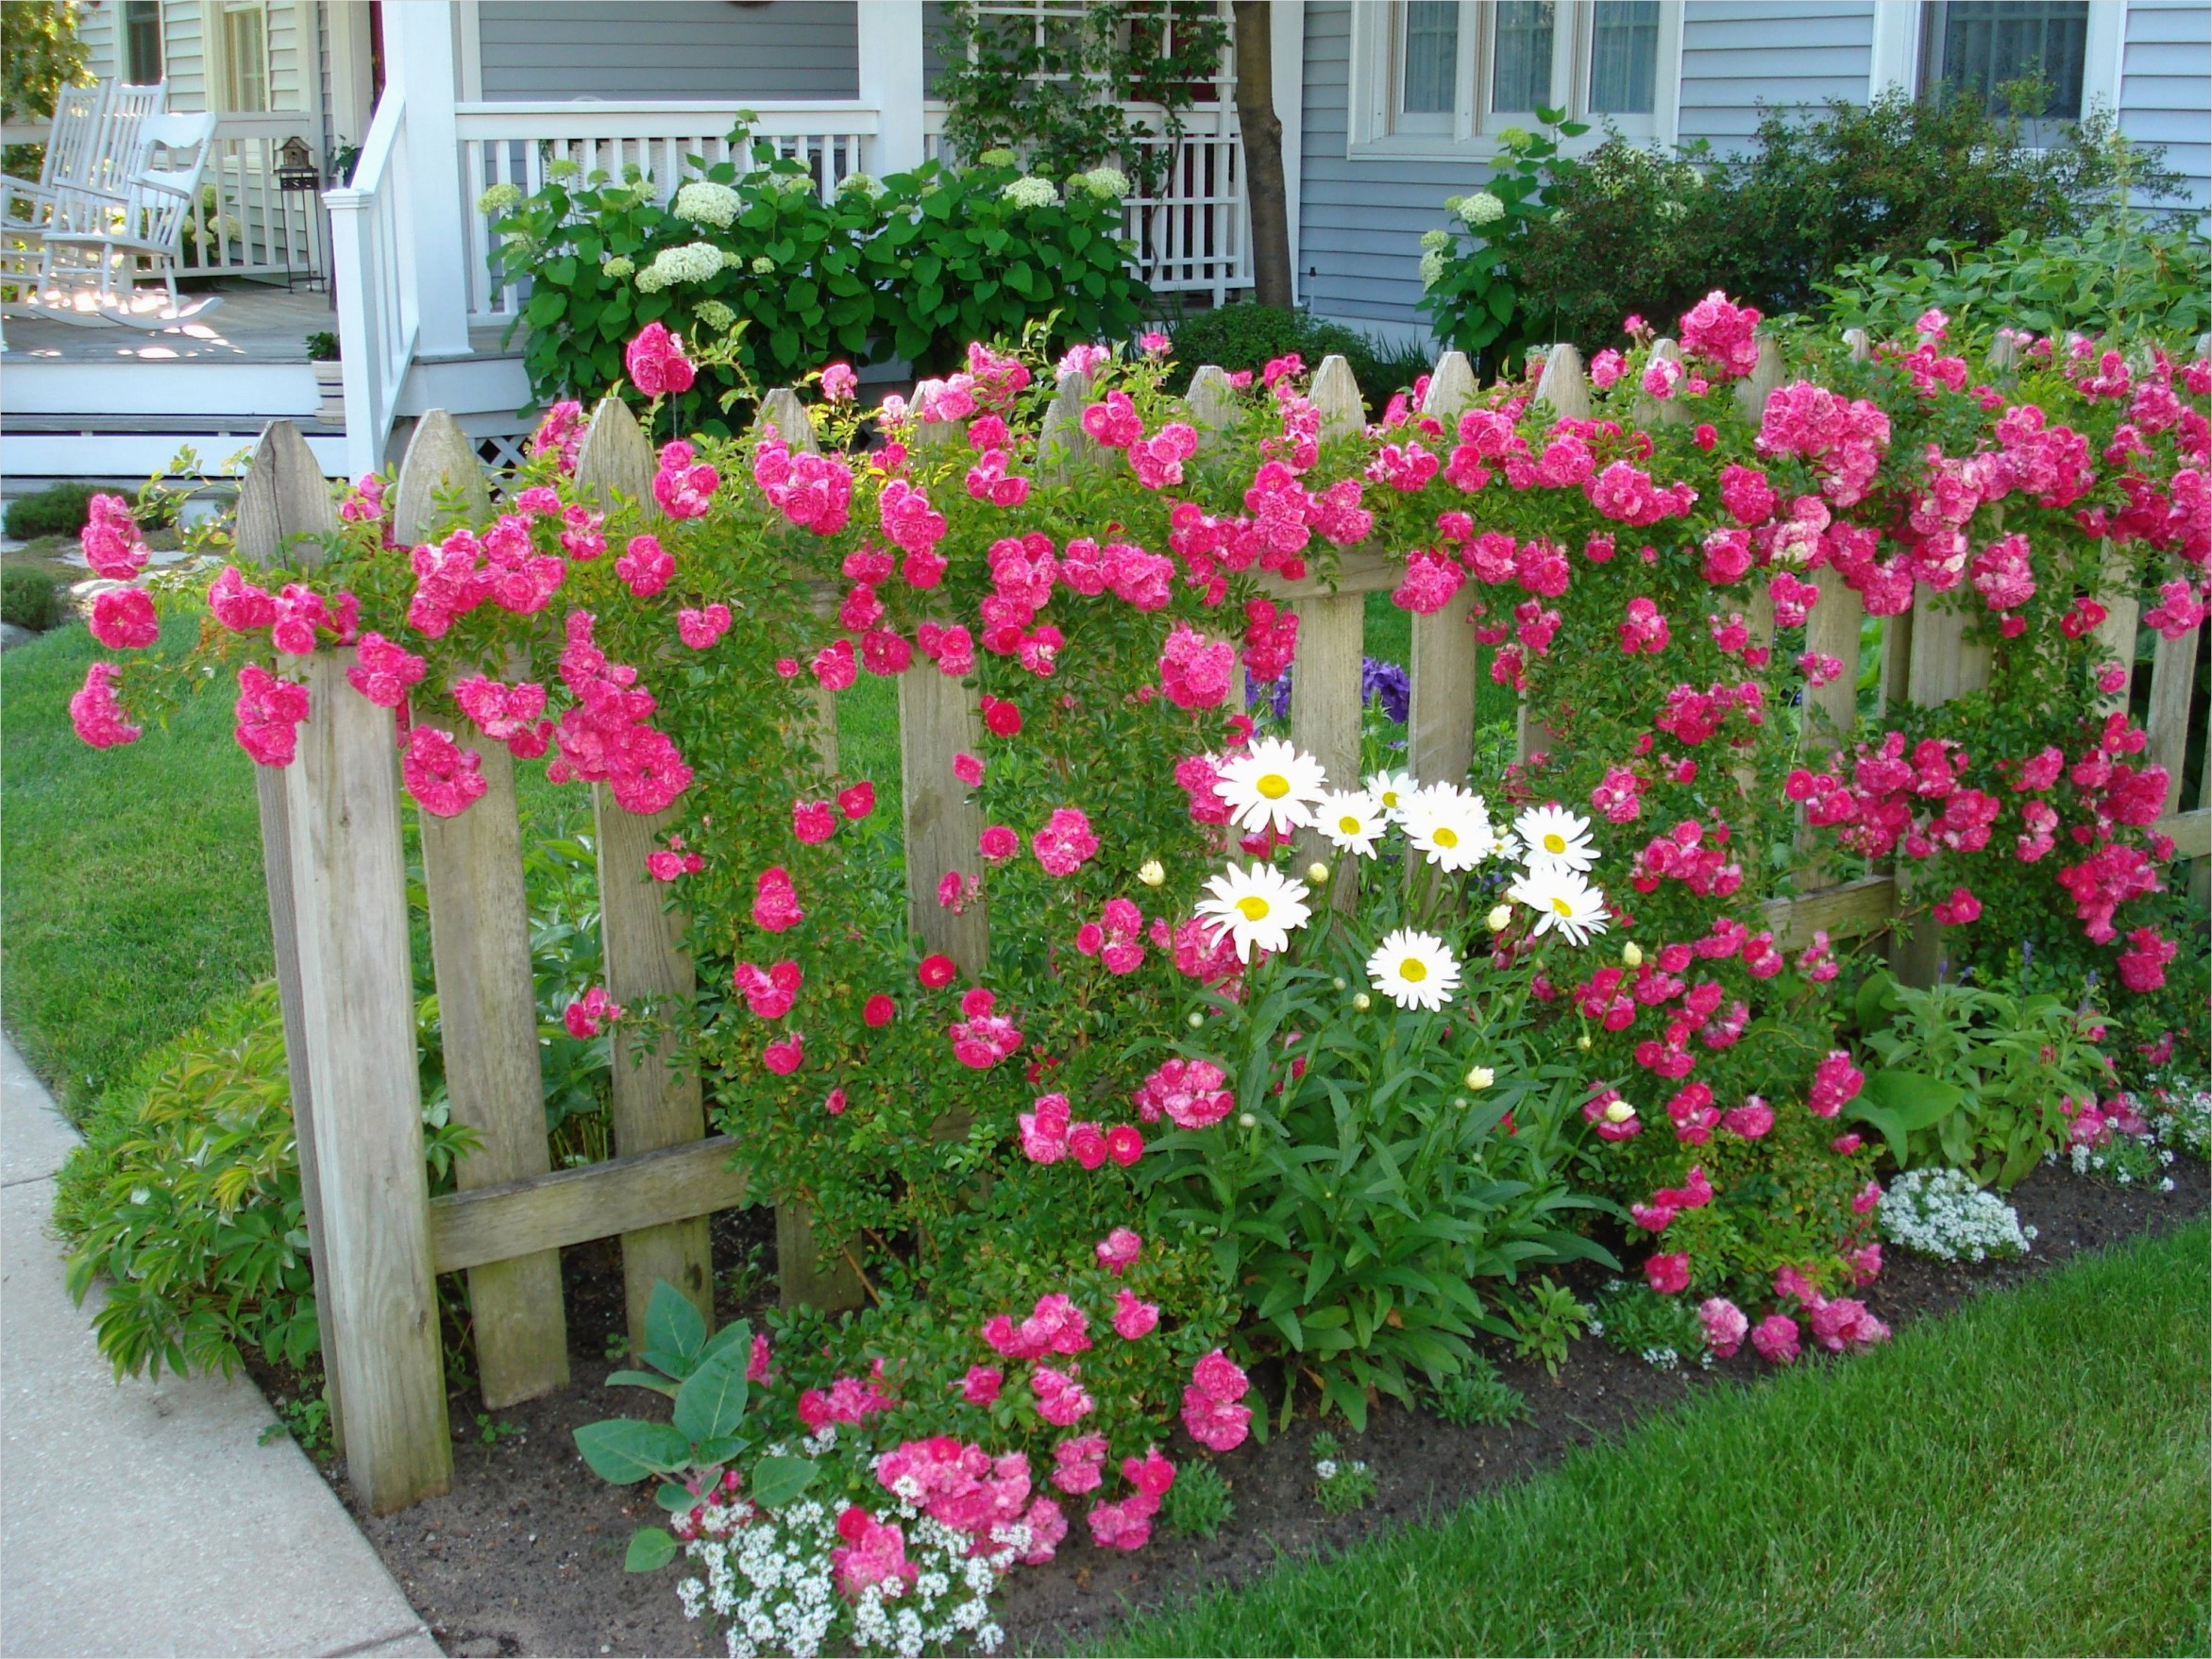 40 Best and Beautiful Climbing Flowers for Fences 37 Climbing Roses On Board Fence Brought to You by Cookies In Bloom and Hannah S Caramel Apples 5